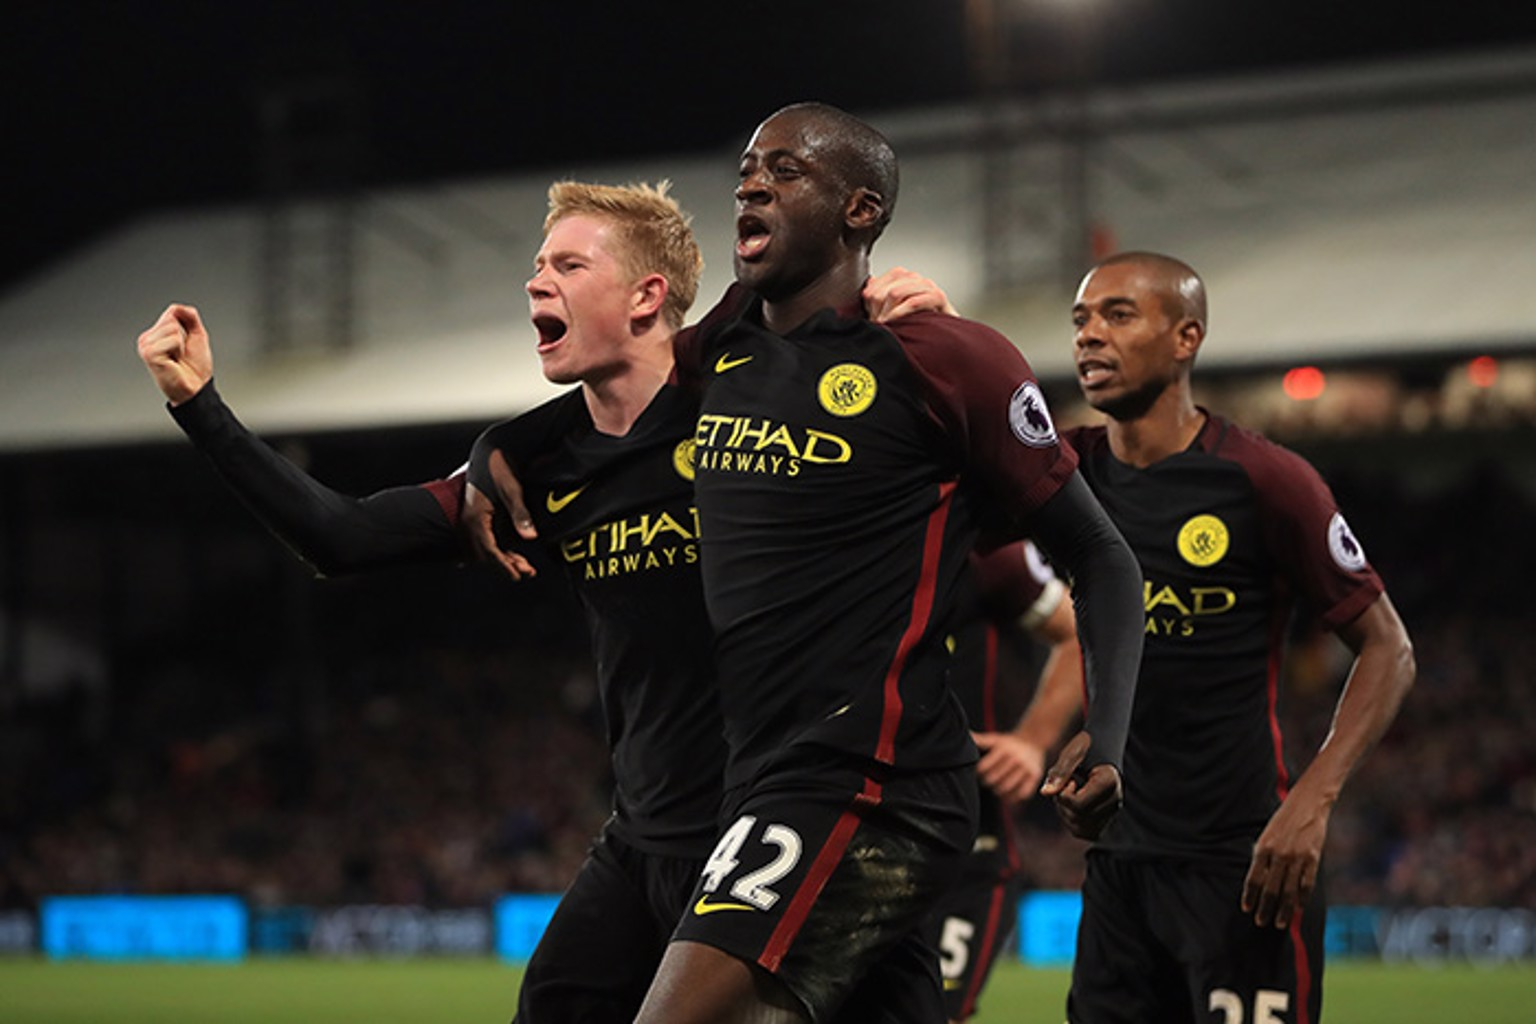 DOUBLE - Yaya Toure celebrates scoring his second goal